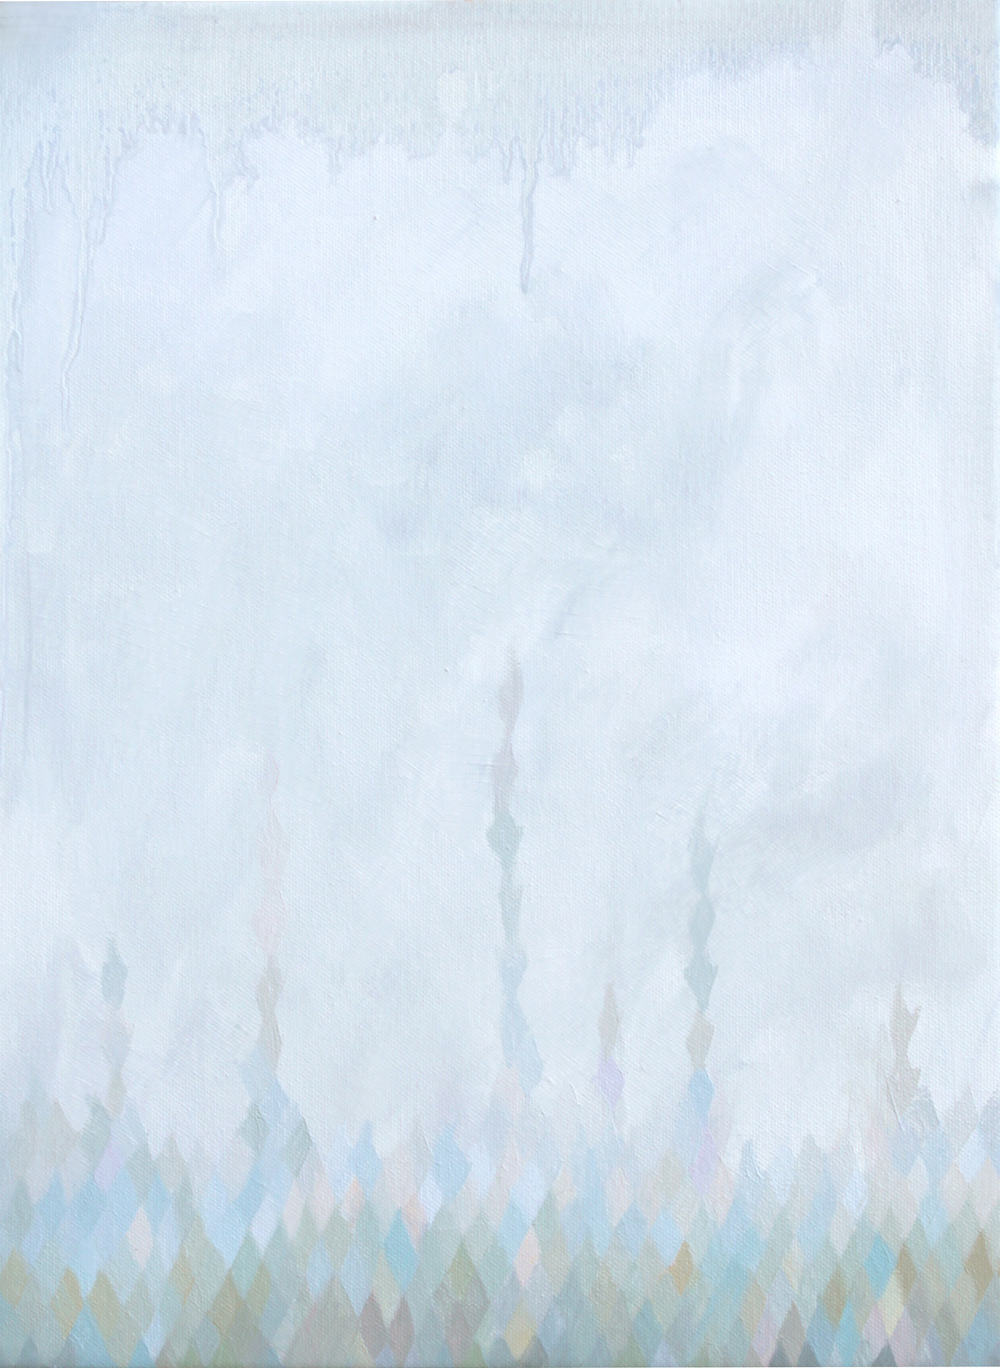 GINA BORG upward,oil on canvas, 16 x 12 inches, 2013